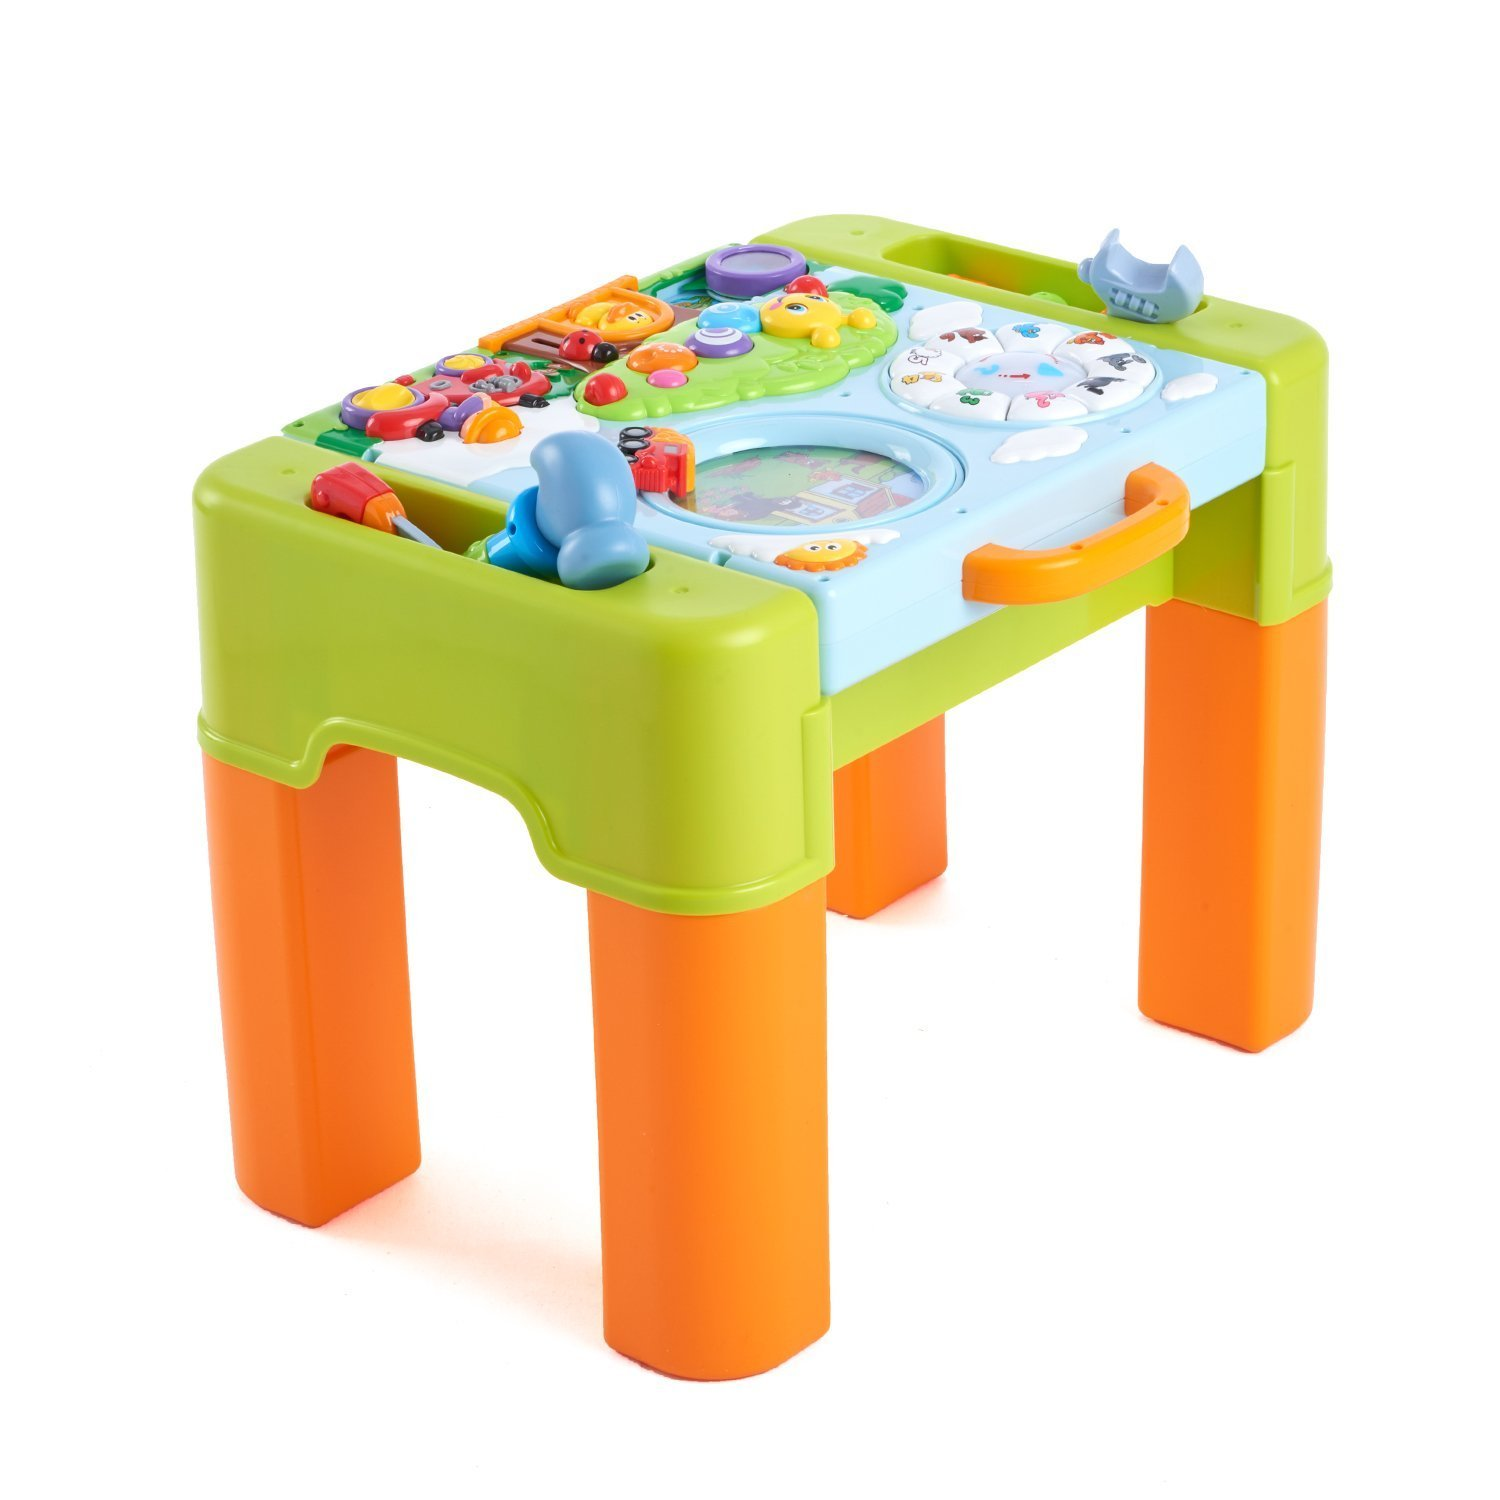 Woby Kids Play and Learning Activity Desk 6 in 1 Game Table Activity Center